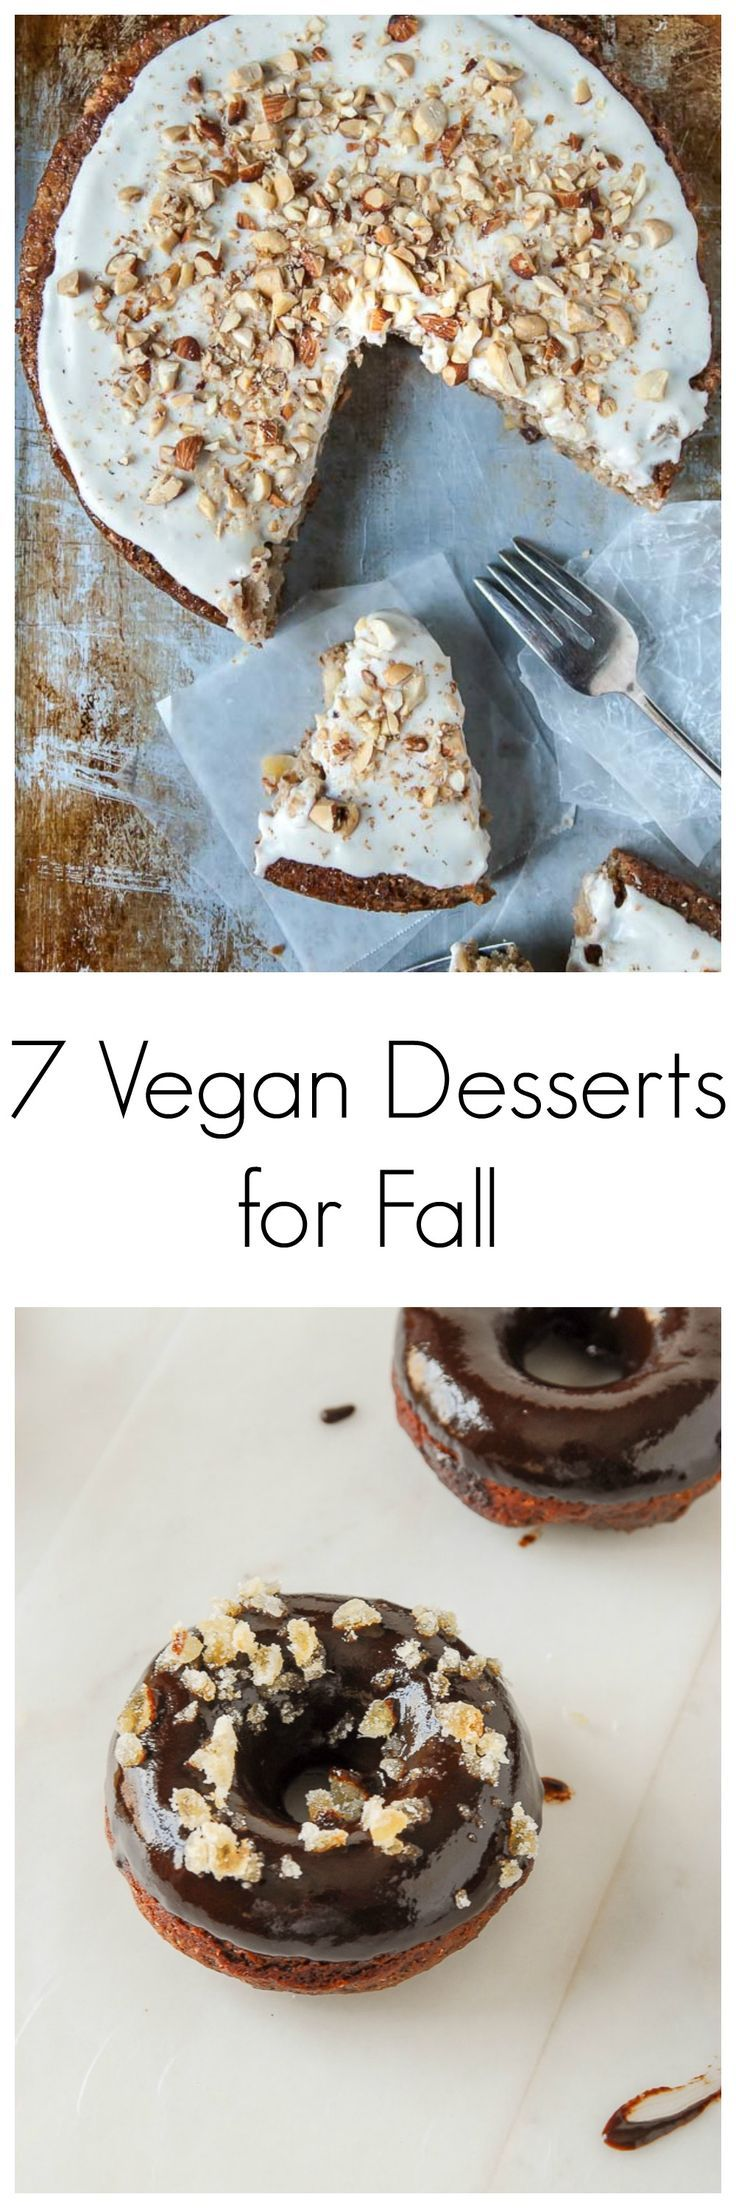 Ready to start your fall baking? Here are 7 vegan dessert recipes ready for the fall season!